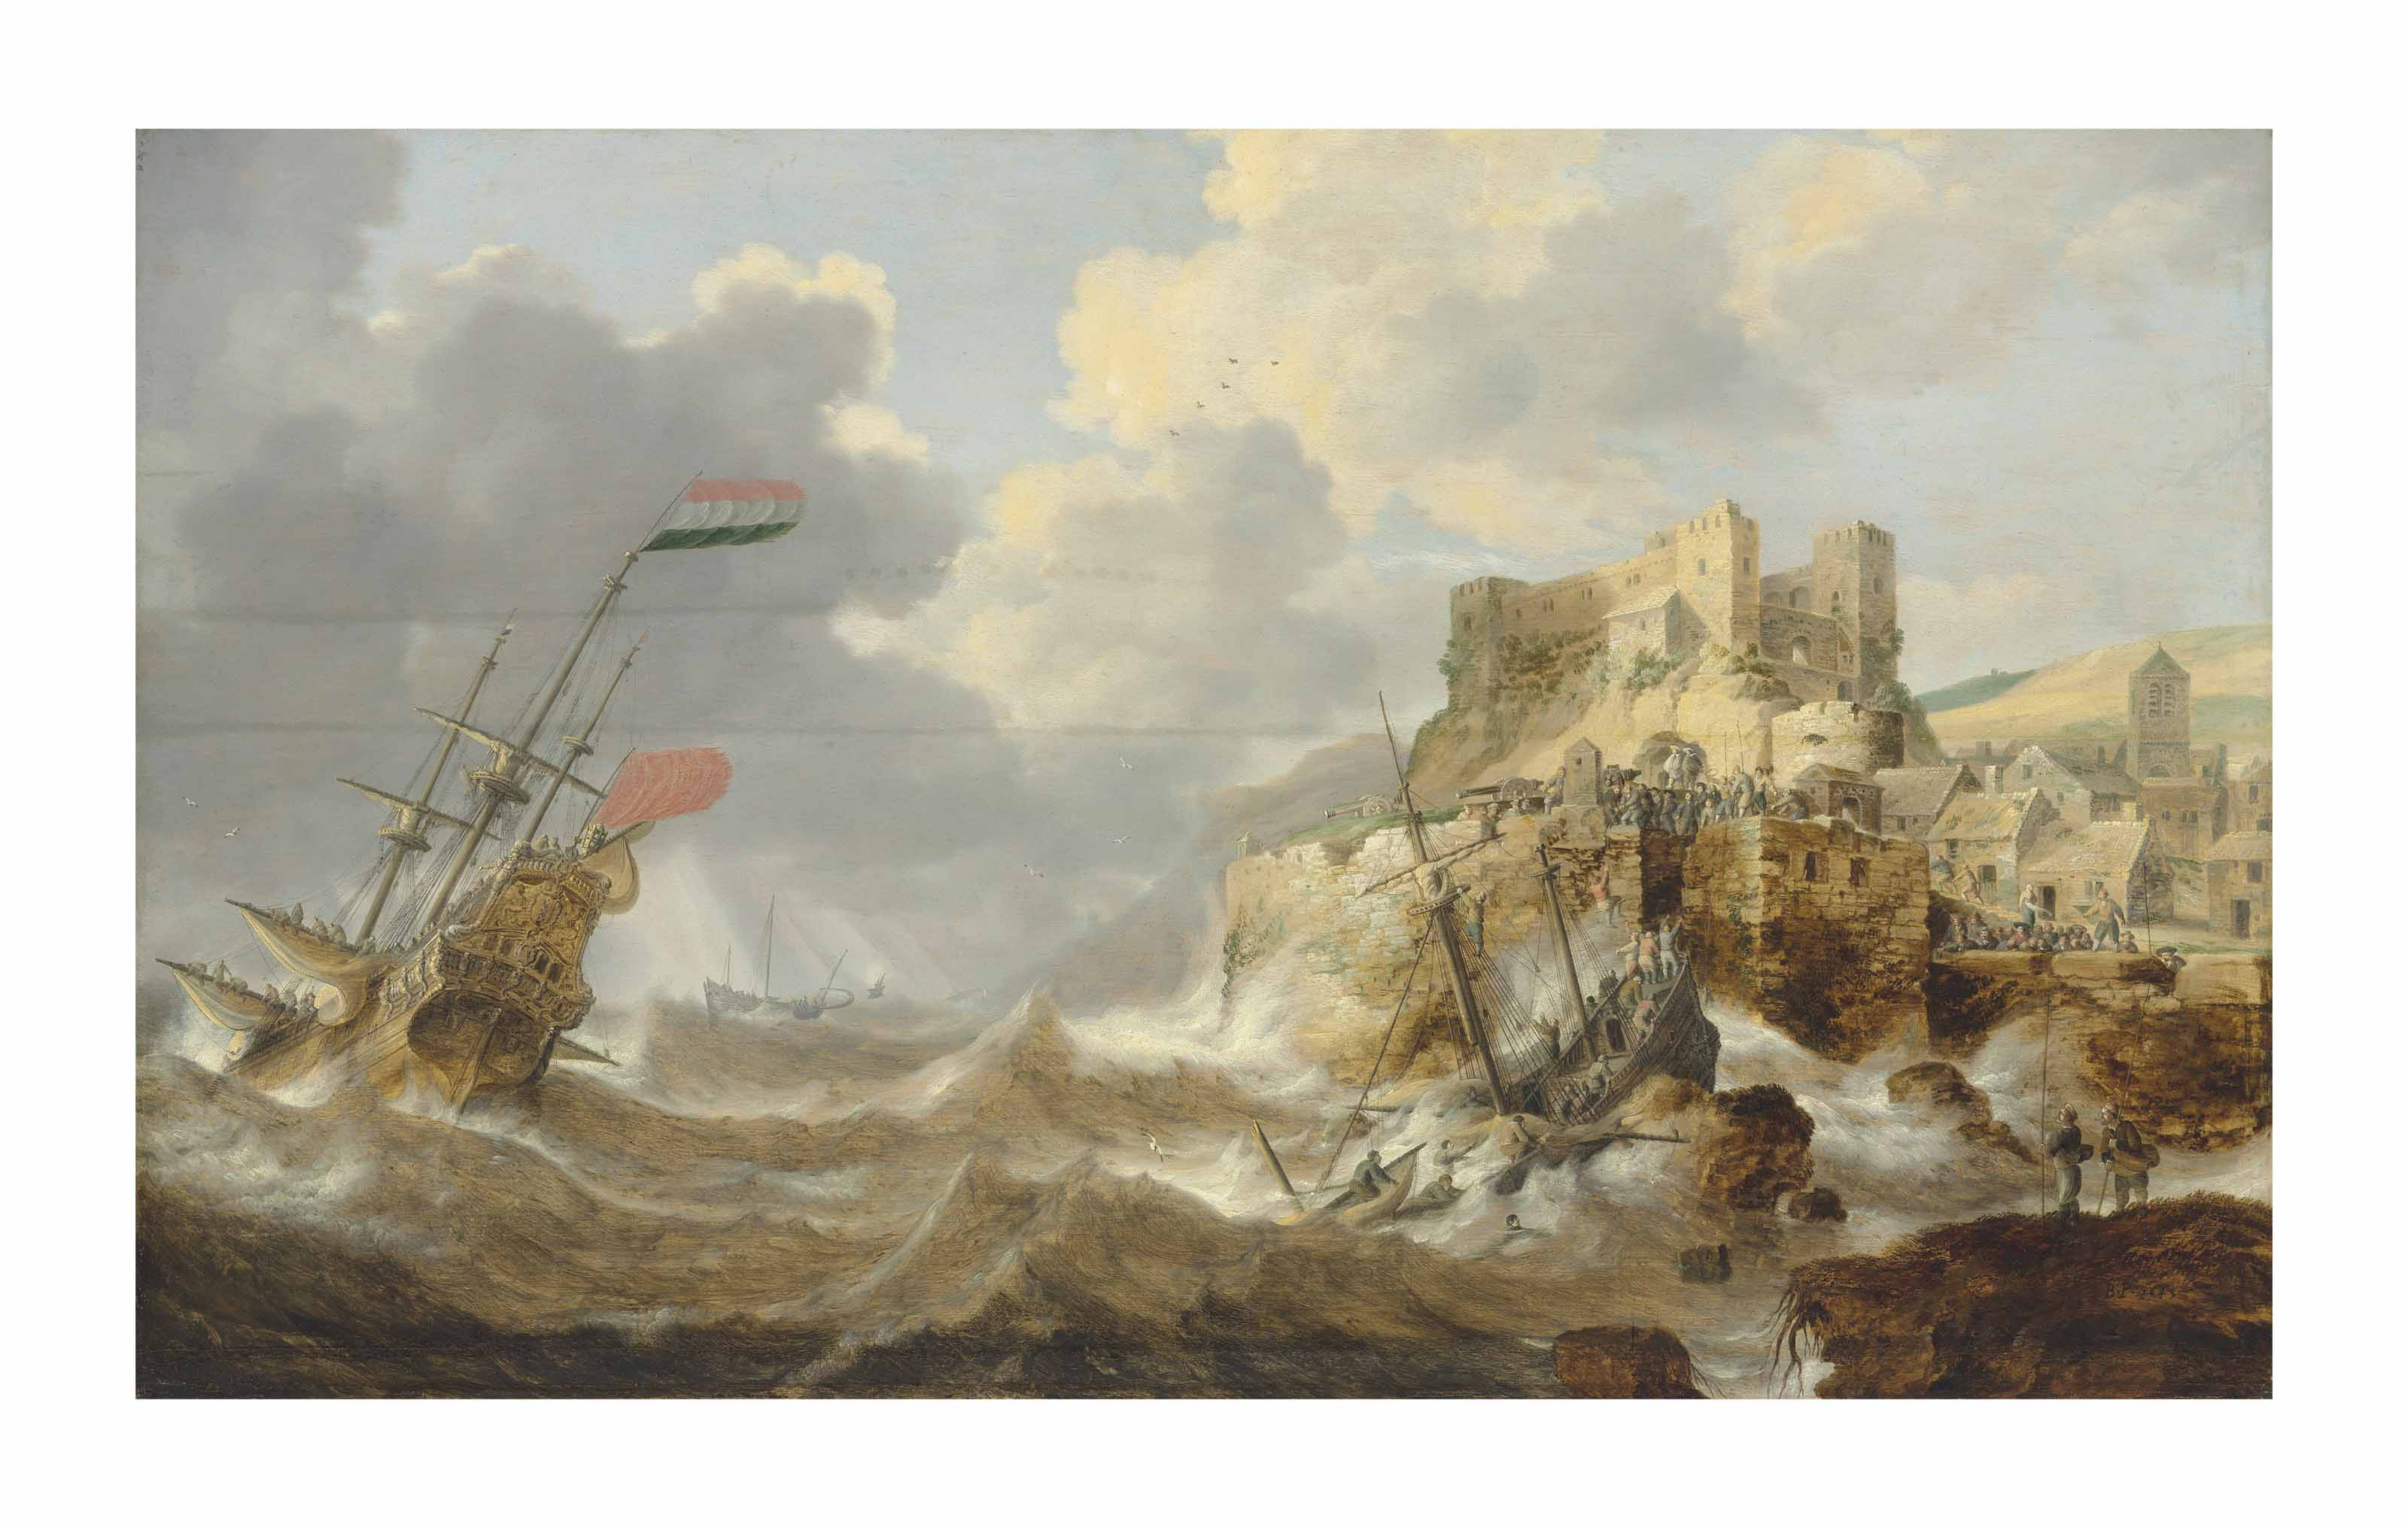 A coastal landscape with a Dutch three-master in distress and a shipwreck by a fortified town